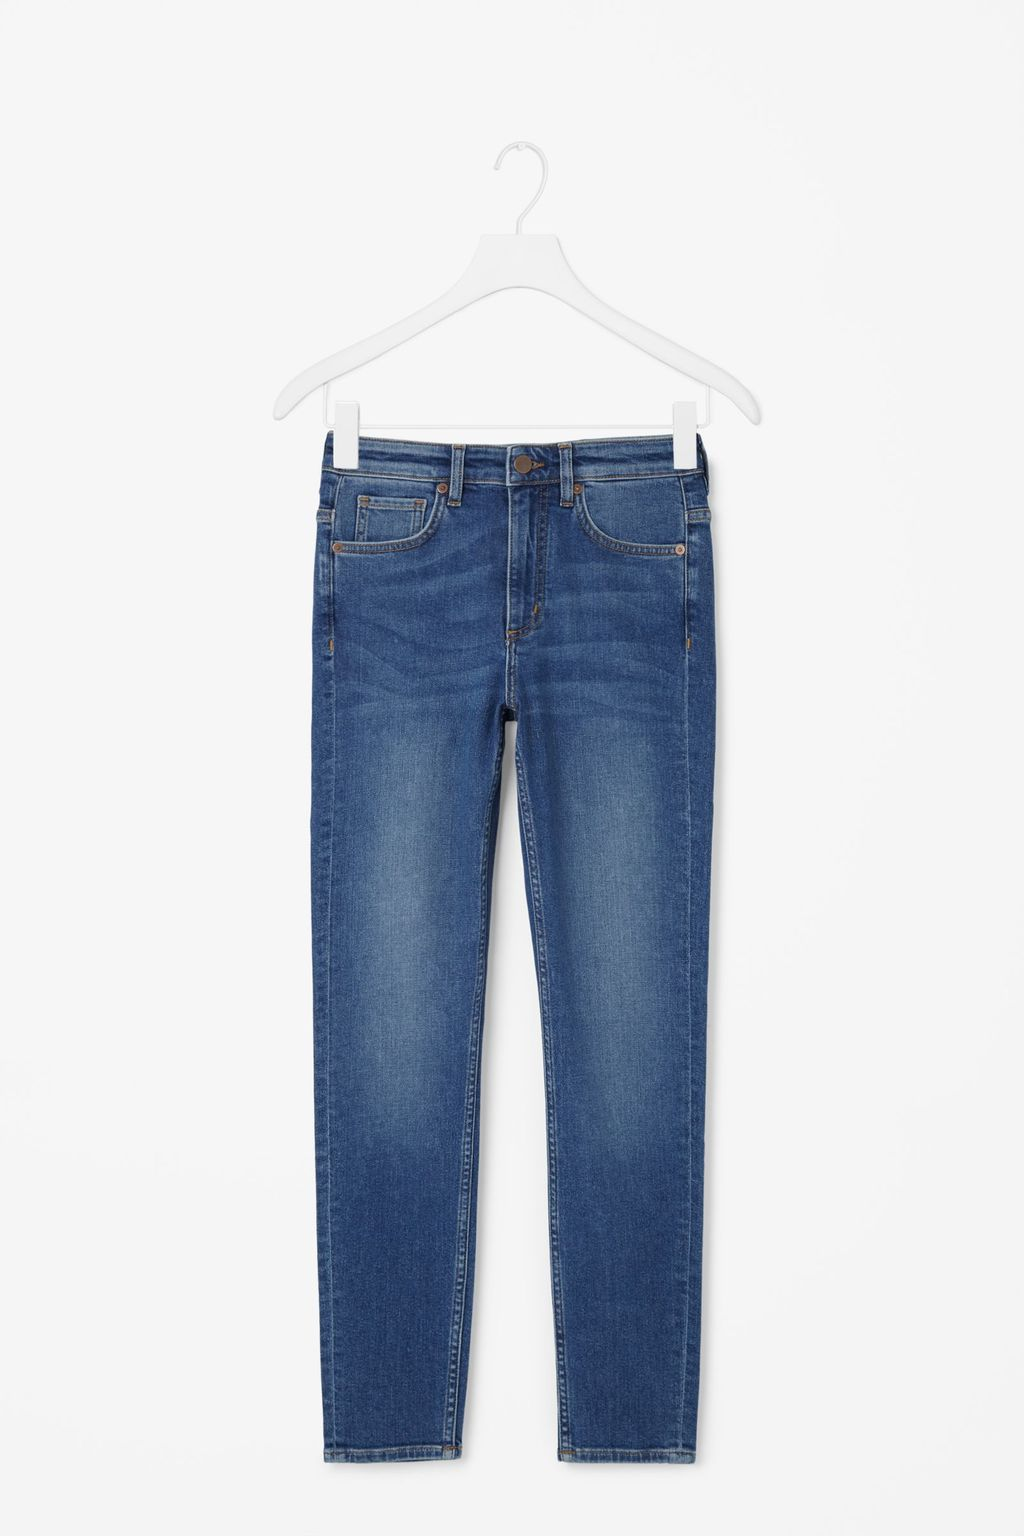 Slim Fit Cropped Jeans - pattern: plain; waist: high rise; style: slim leg; predominant colour: denim; occasions: casual, creative work; length: ankle length; fibres: cotton - mix; jeans detail: shading down centre of thigh; texture group: denim; pattern type: fabric; season: s/s 2016; wardrobe: basic